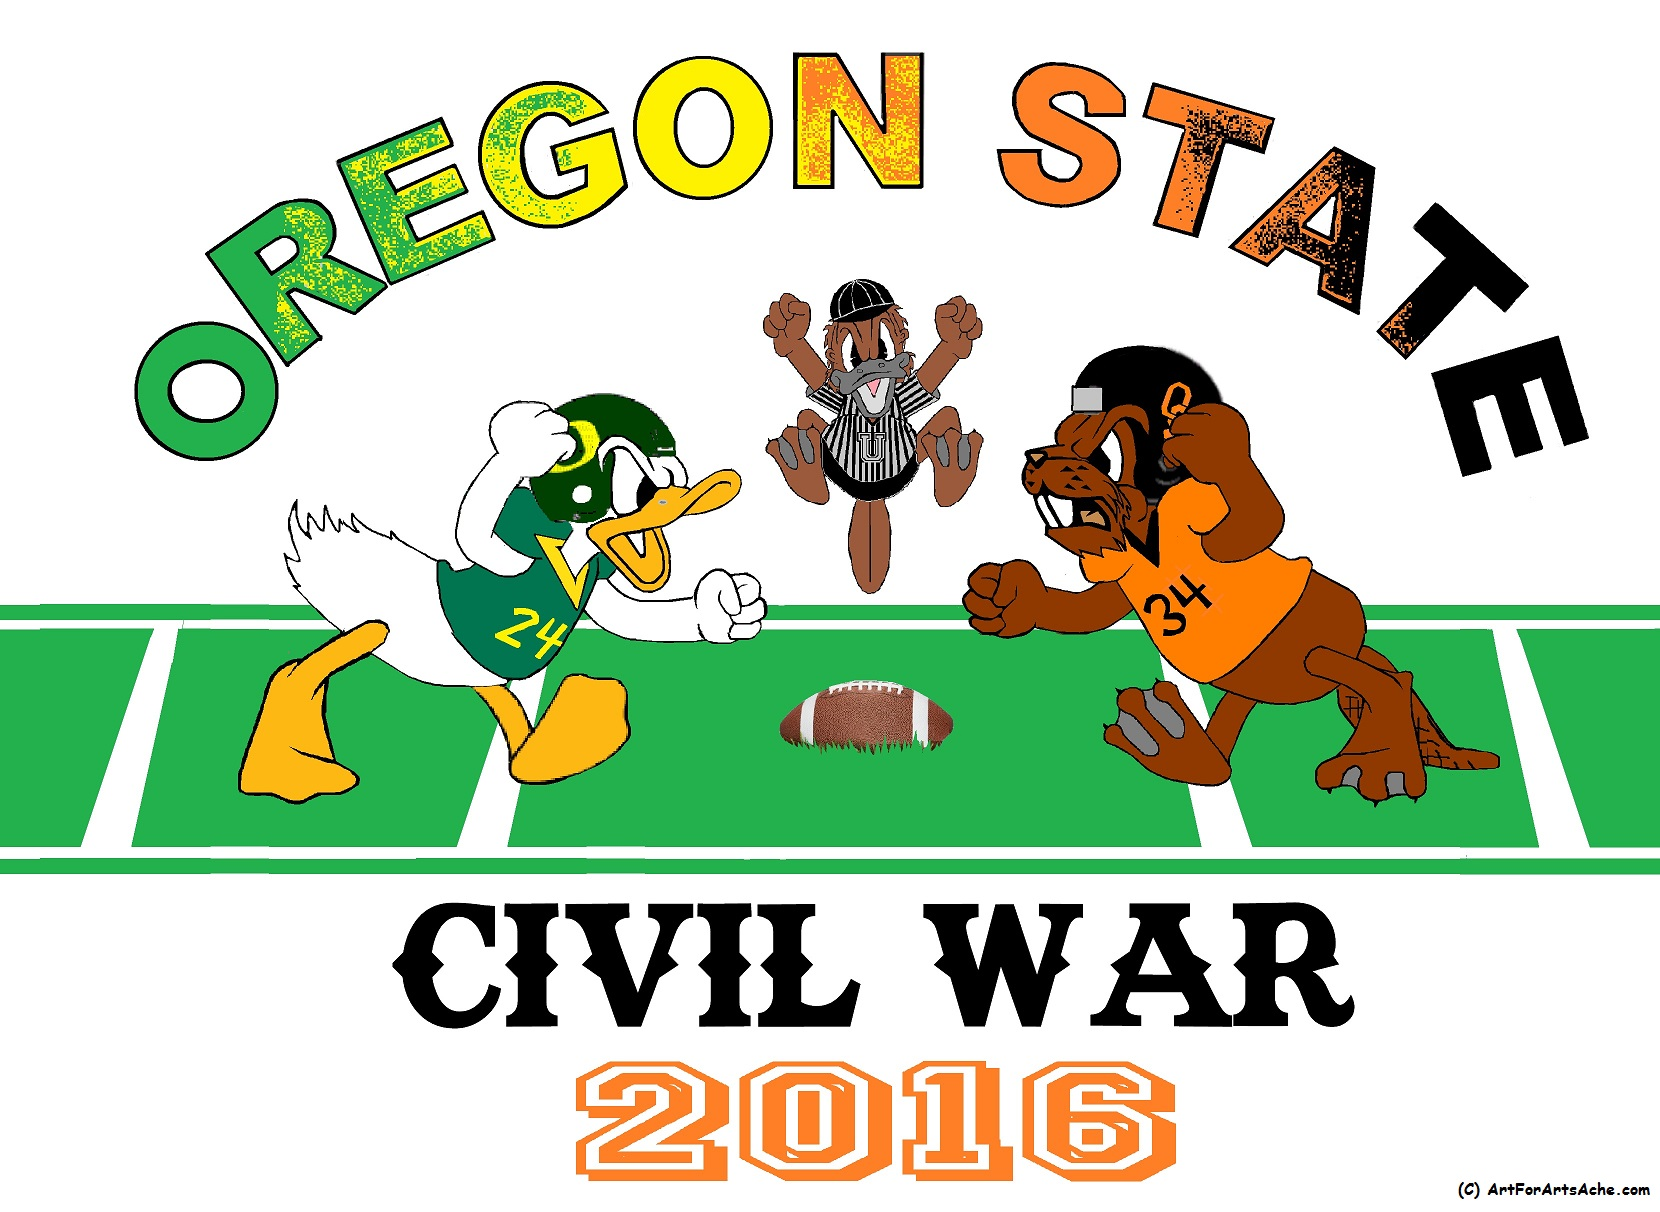 Congradulations to the OSU Beavers football team, 2016 game winners